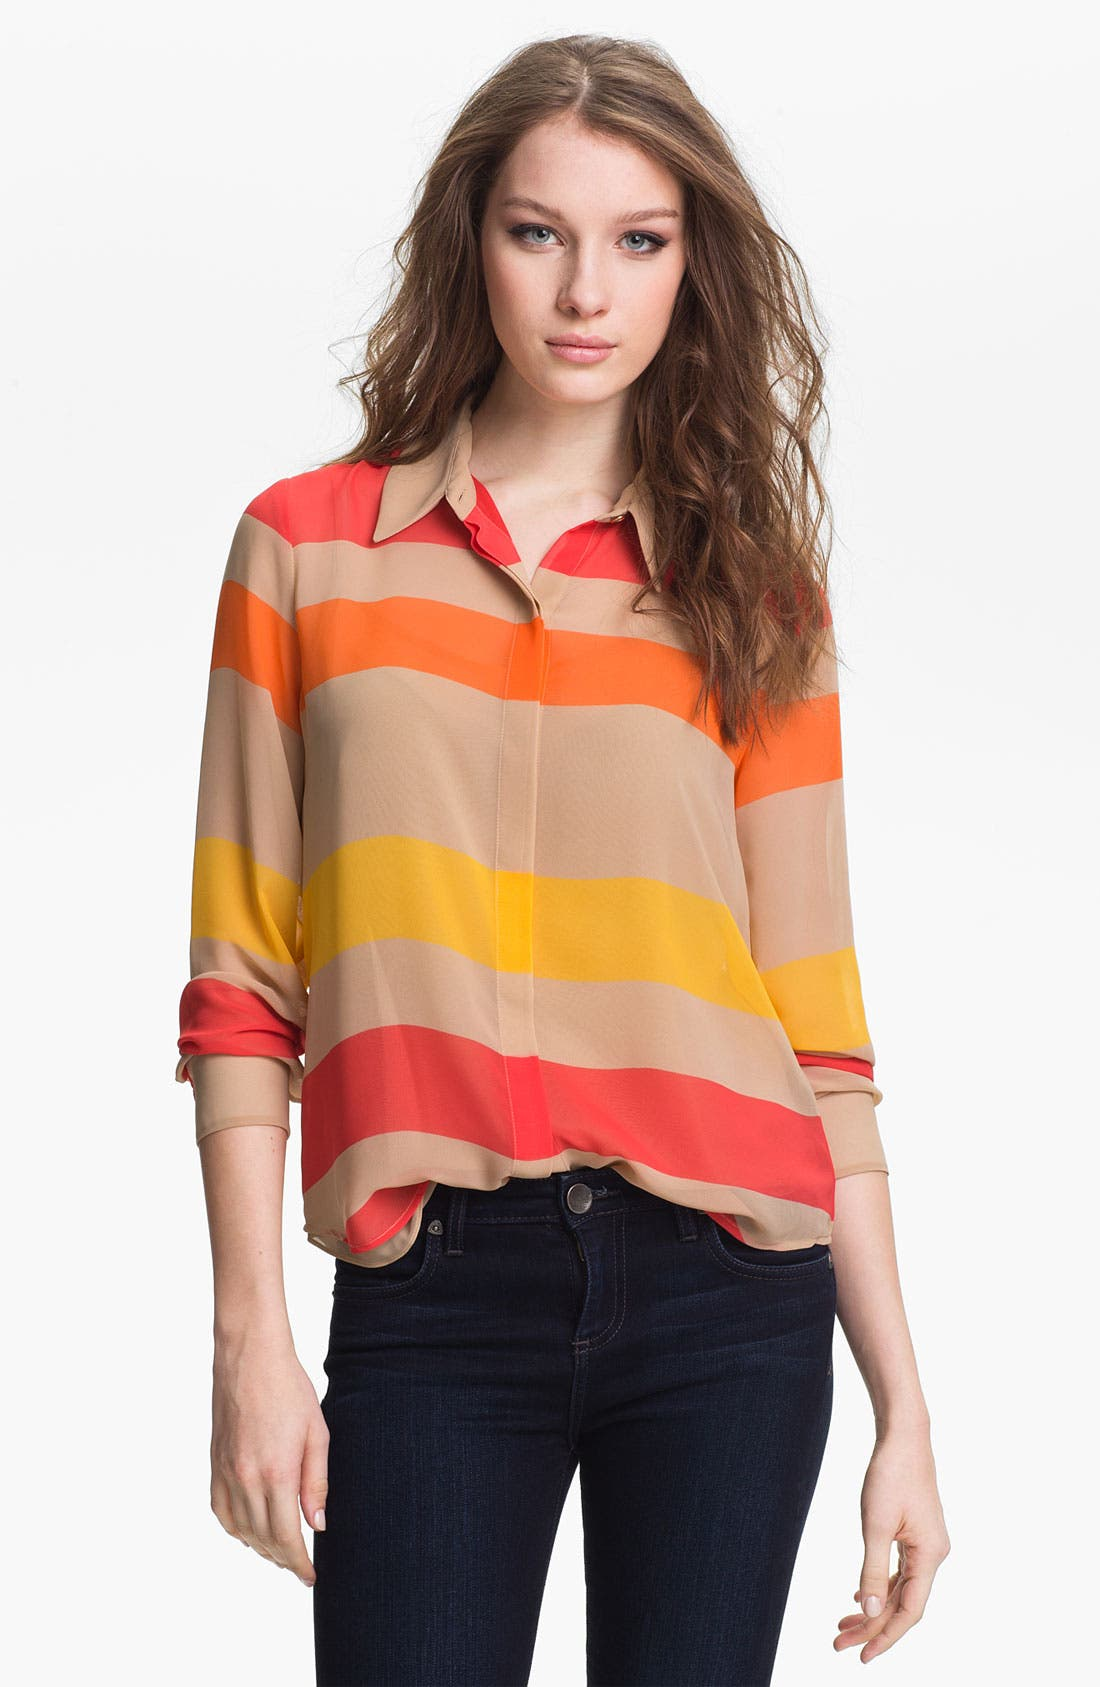 Alternate Image 1 Selected - Vince Camuto Multi Stripe Blouse with Camisole (Petite)